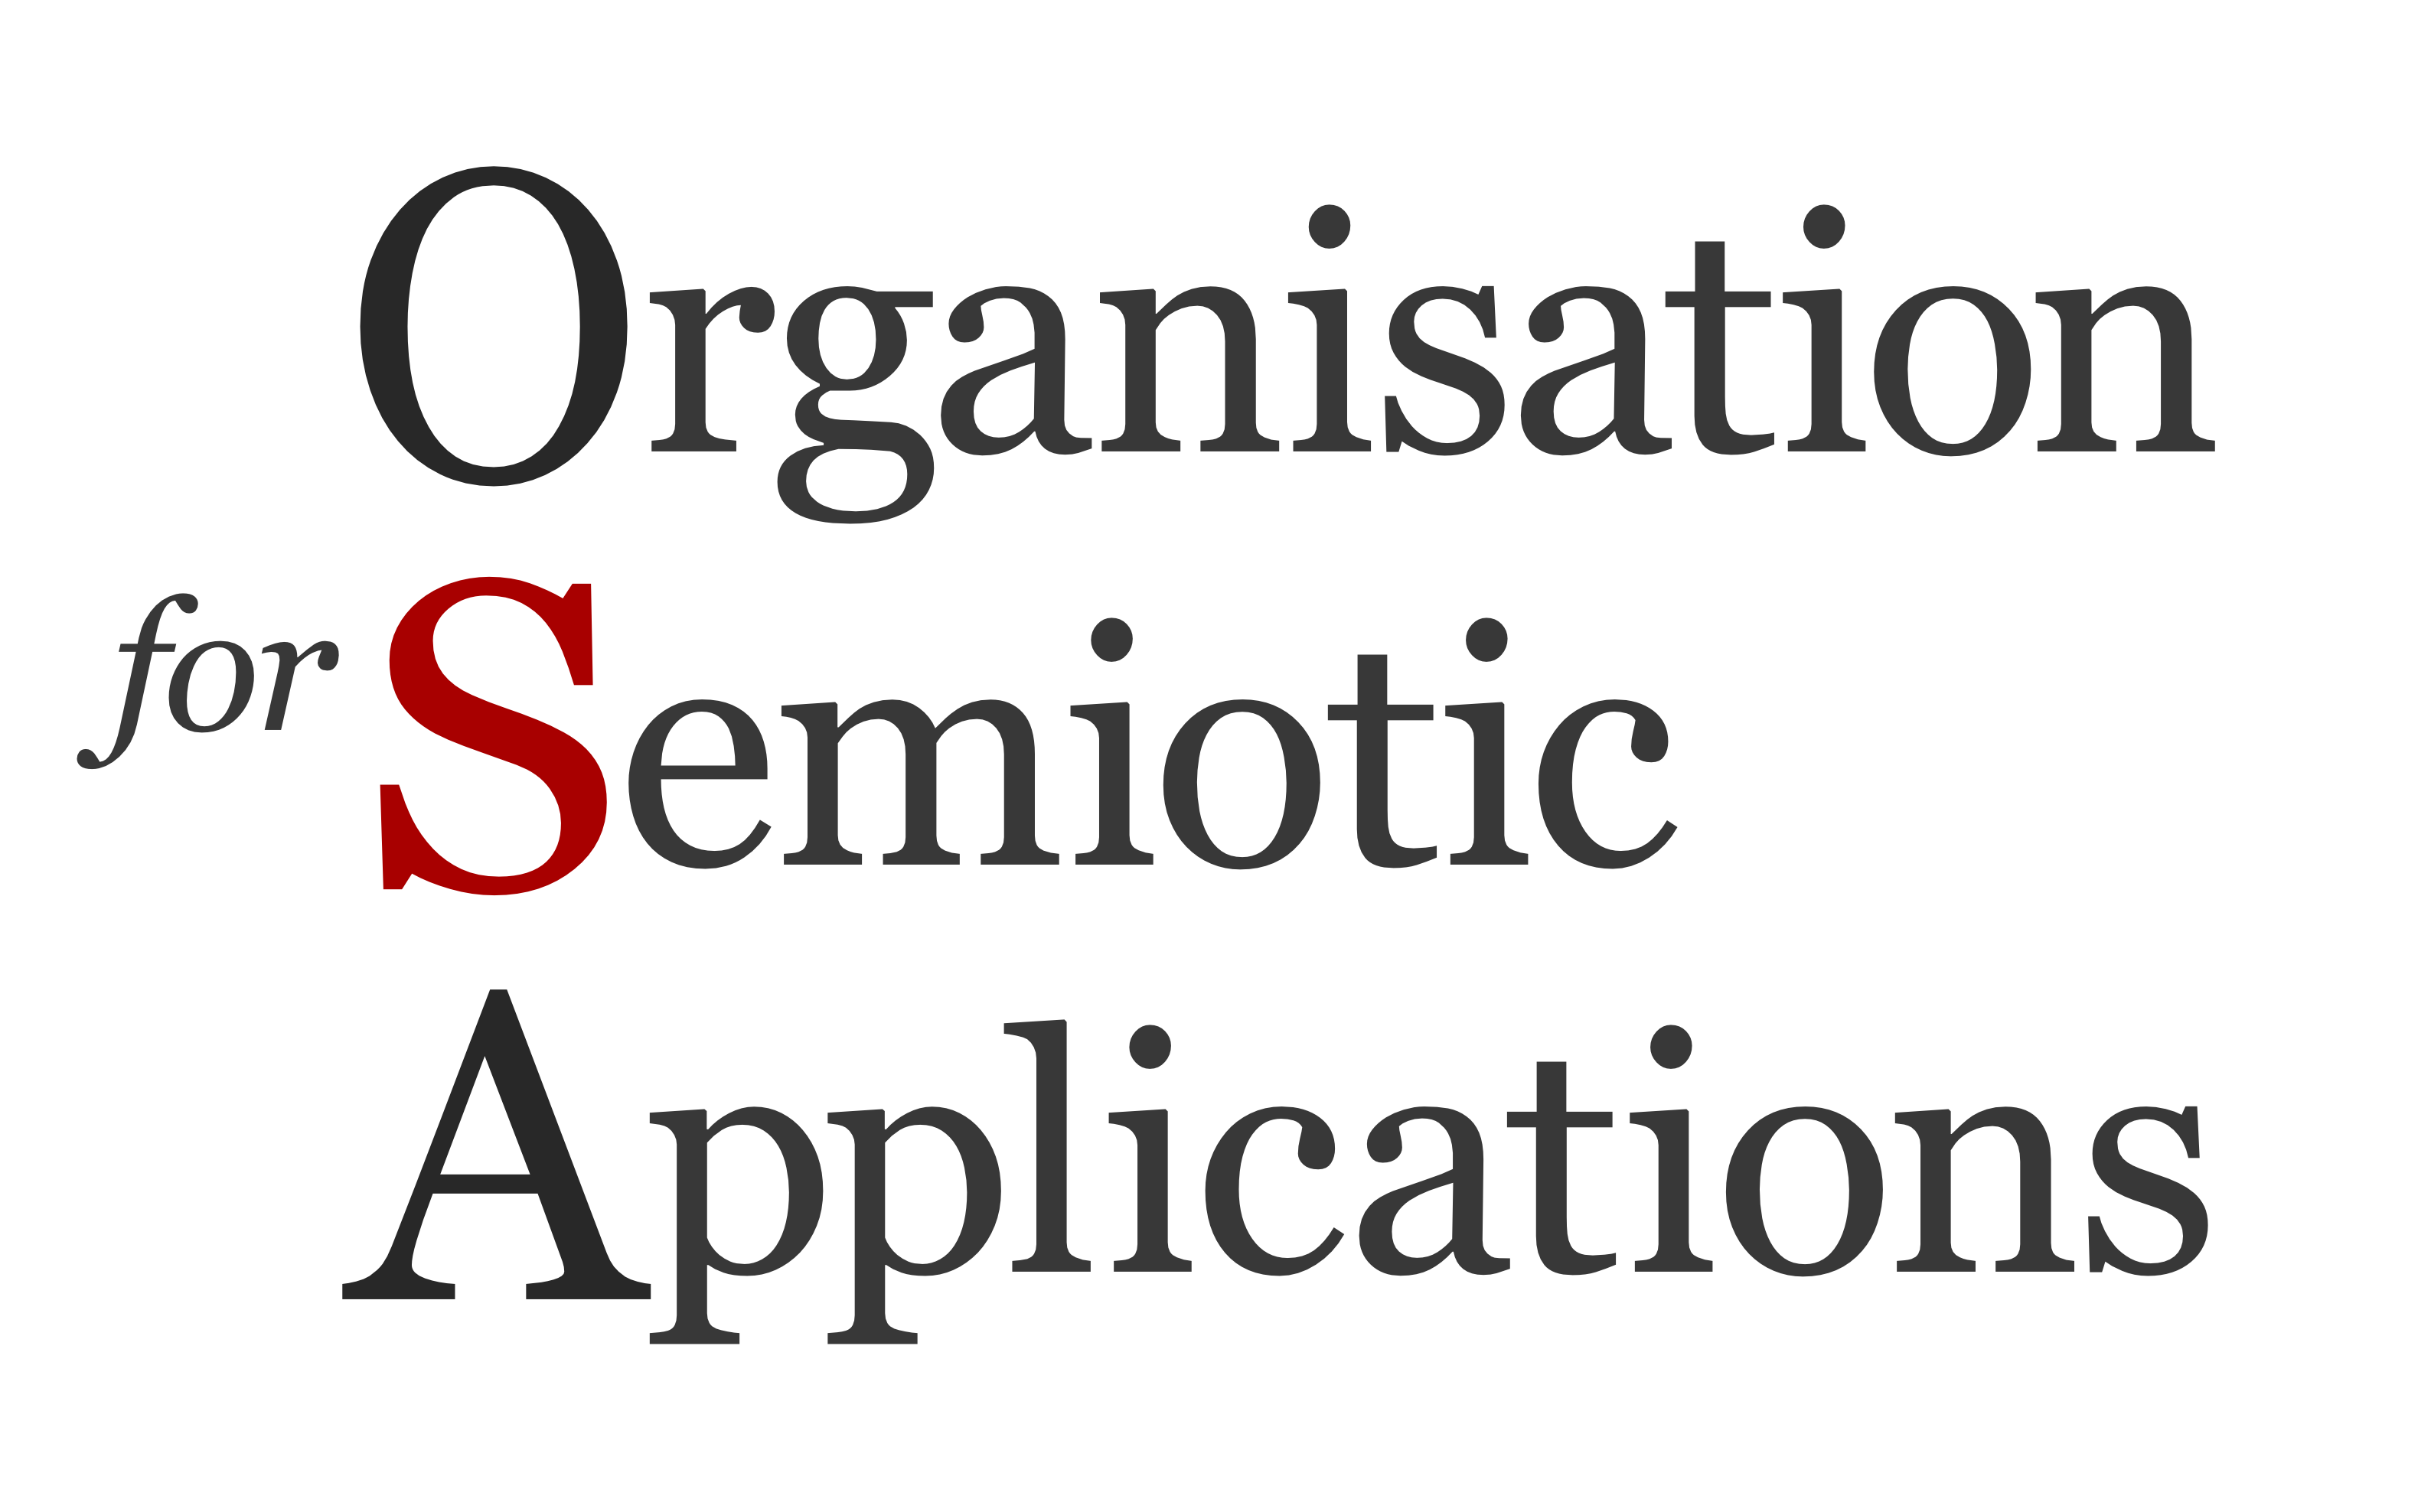 Organization for Semiotic Applications